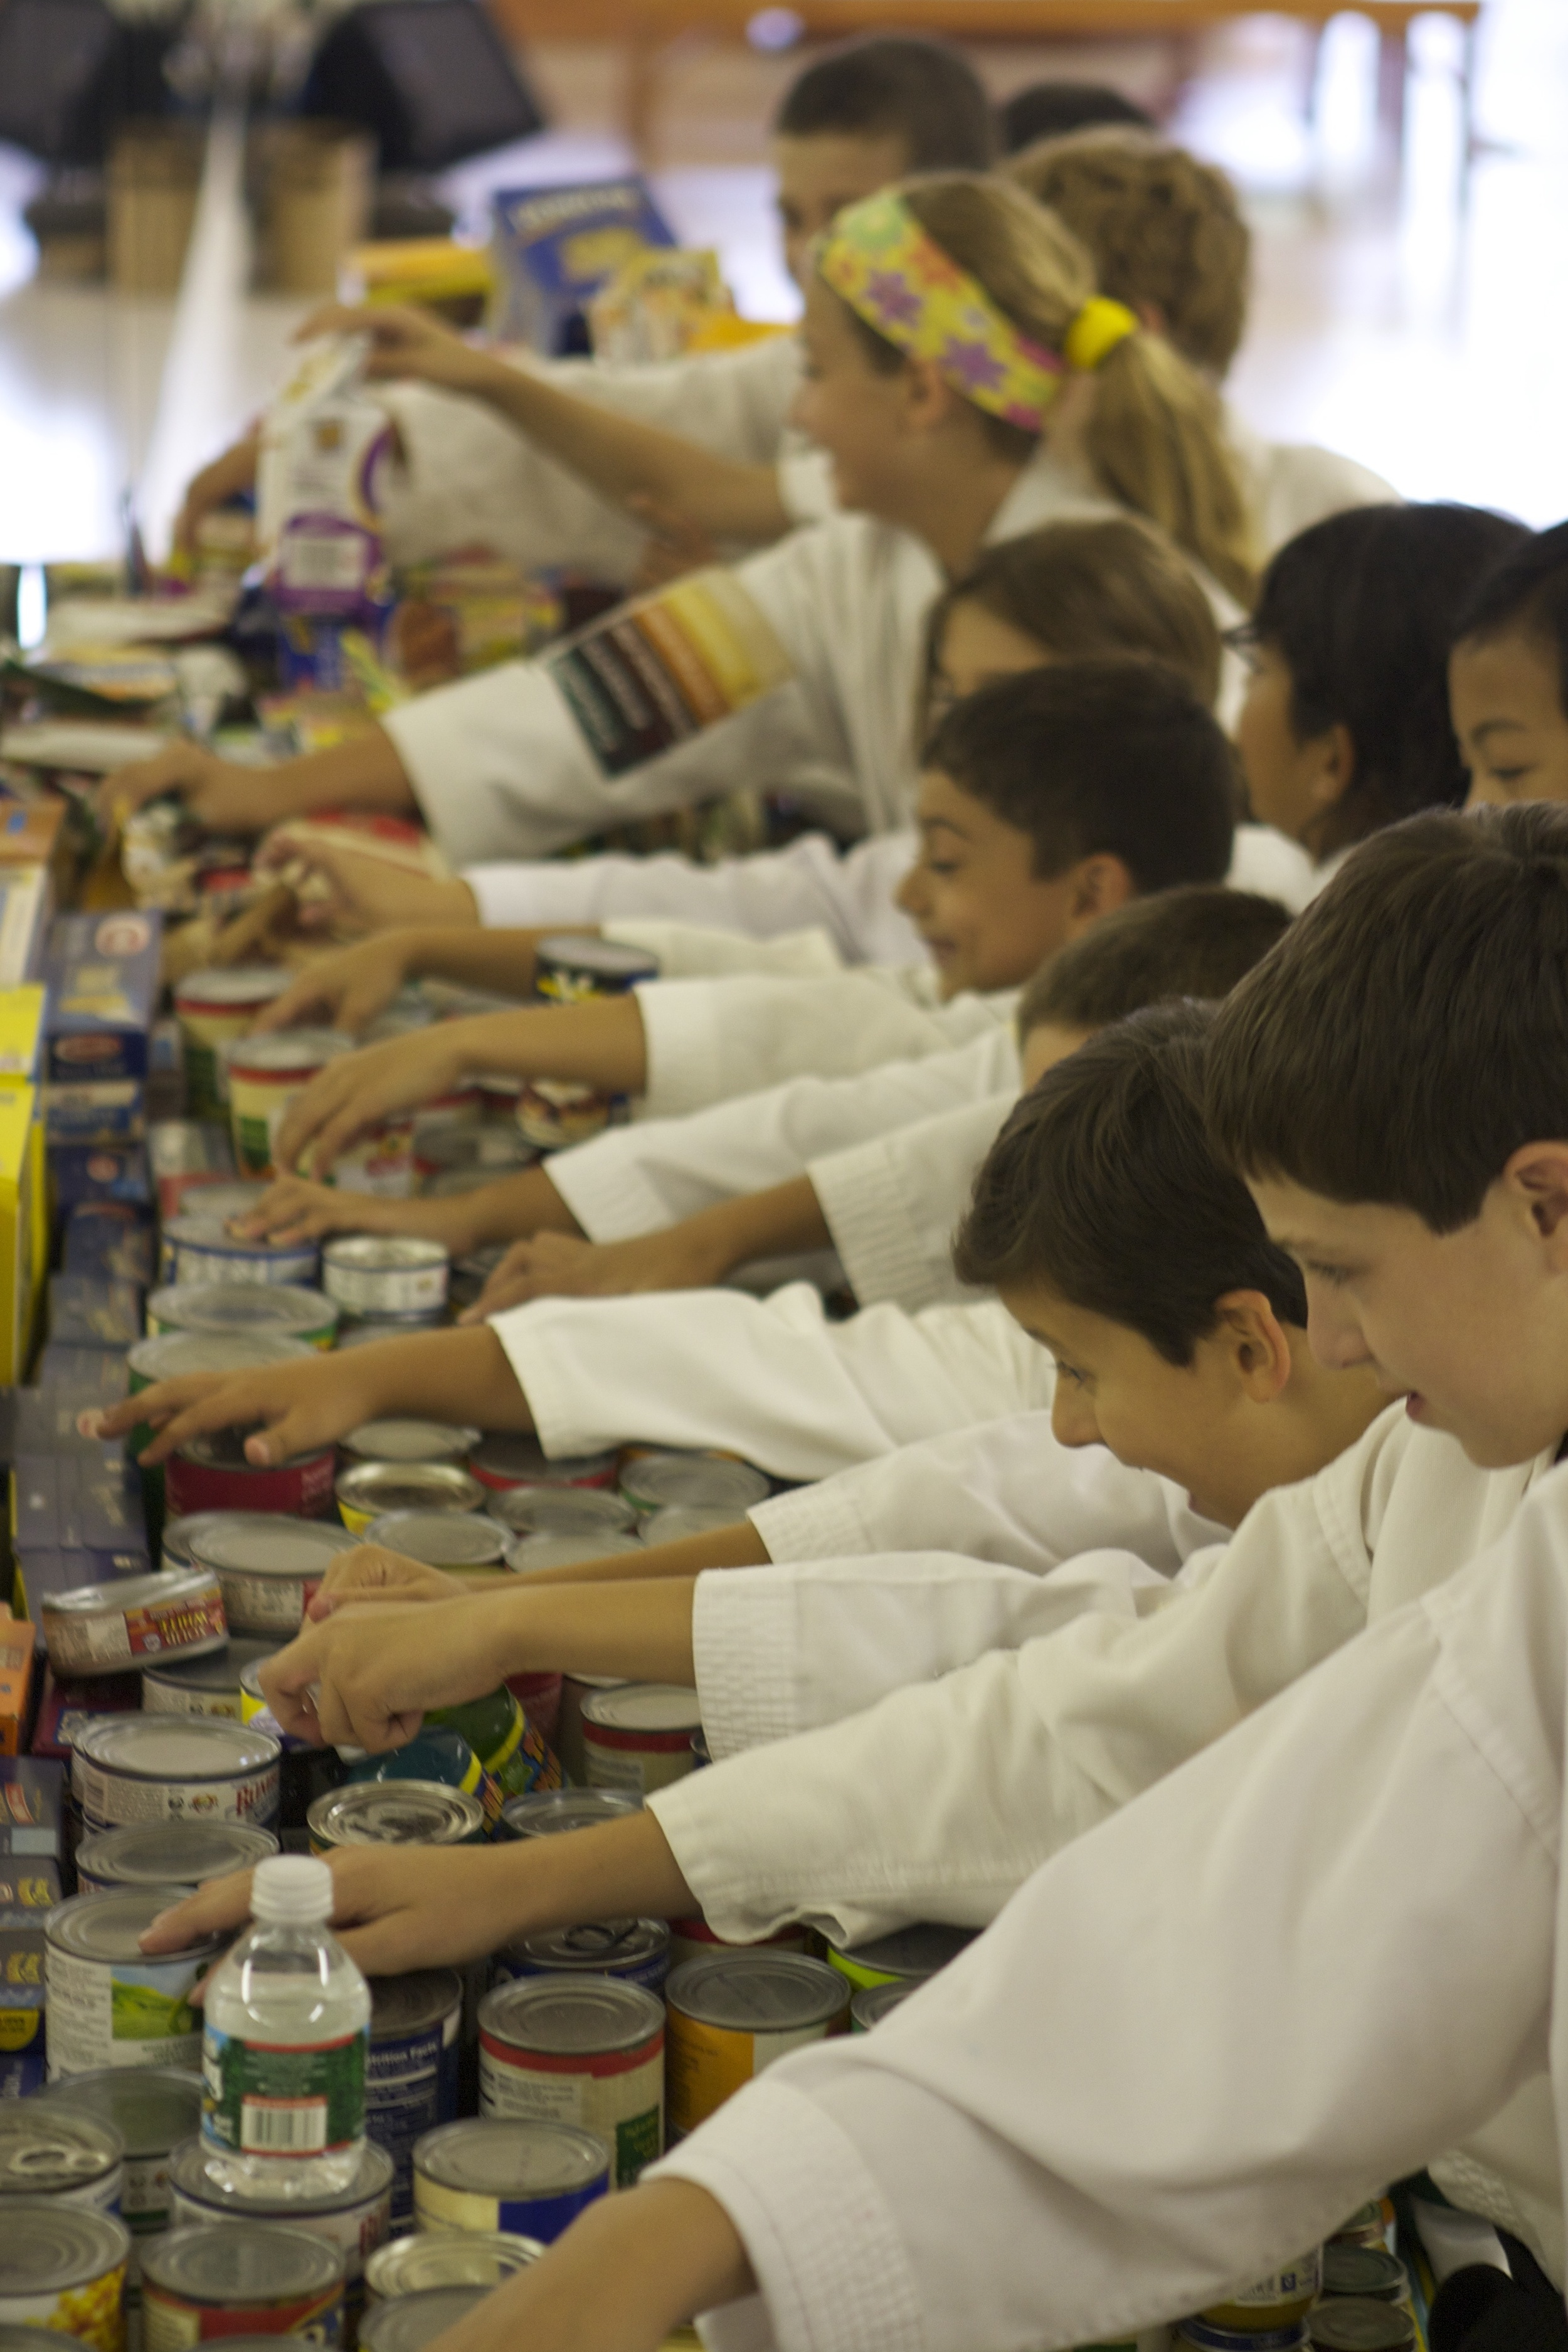 thedojo-food-drive-martial-arts-karate-kids-doing-community-service-in-rutherford-nj_14691000973_o.jpg